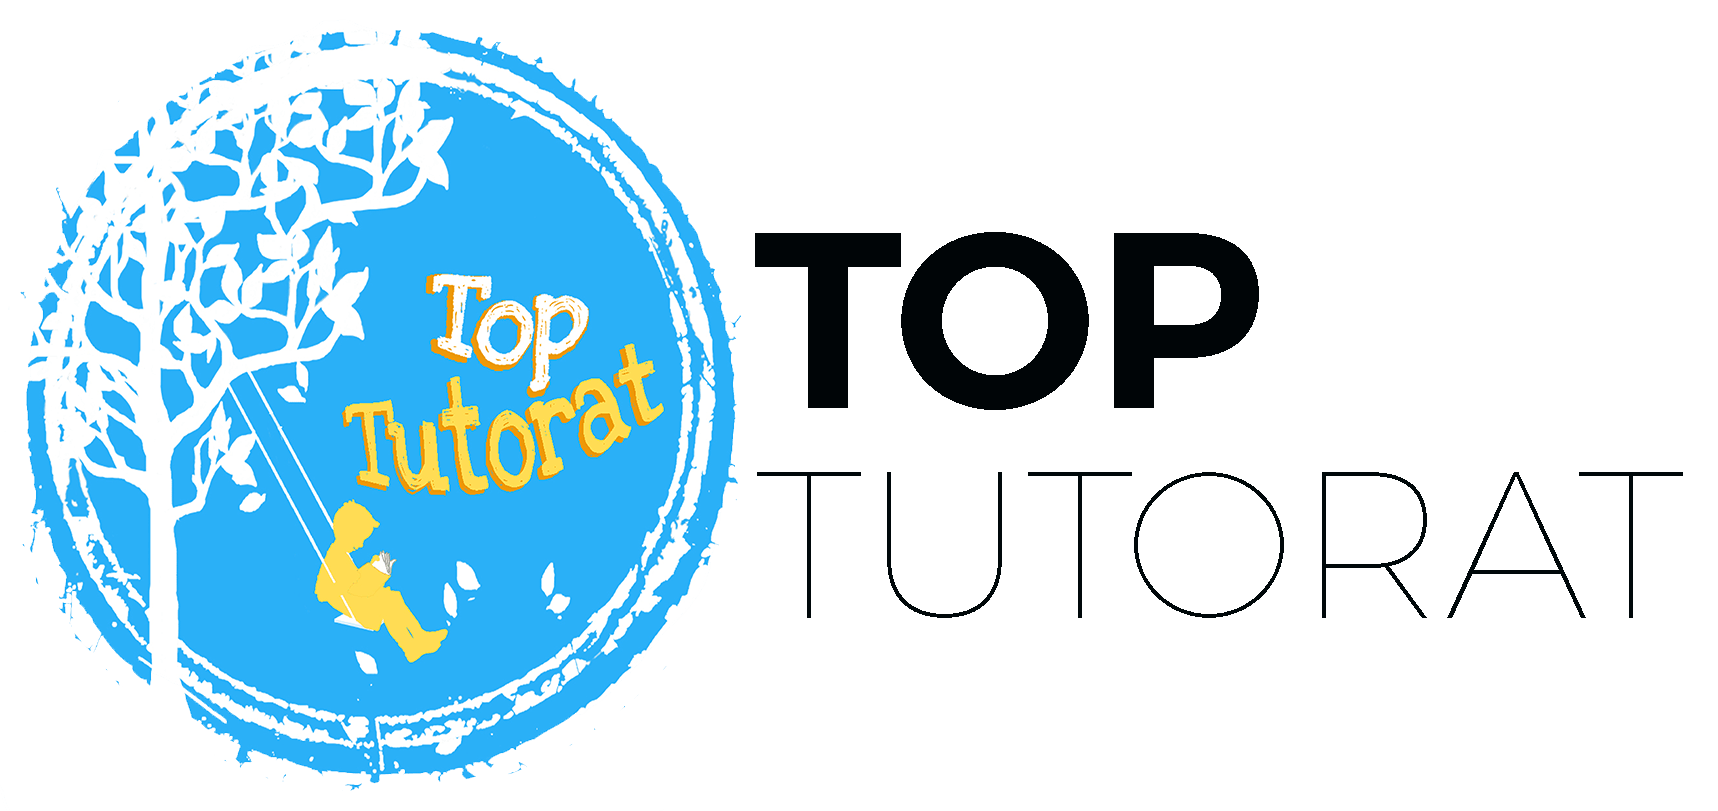 Top-Tutorat - Tutoring & mentoring for elementary students